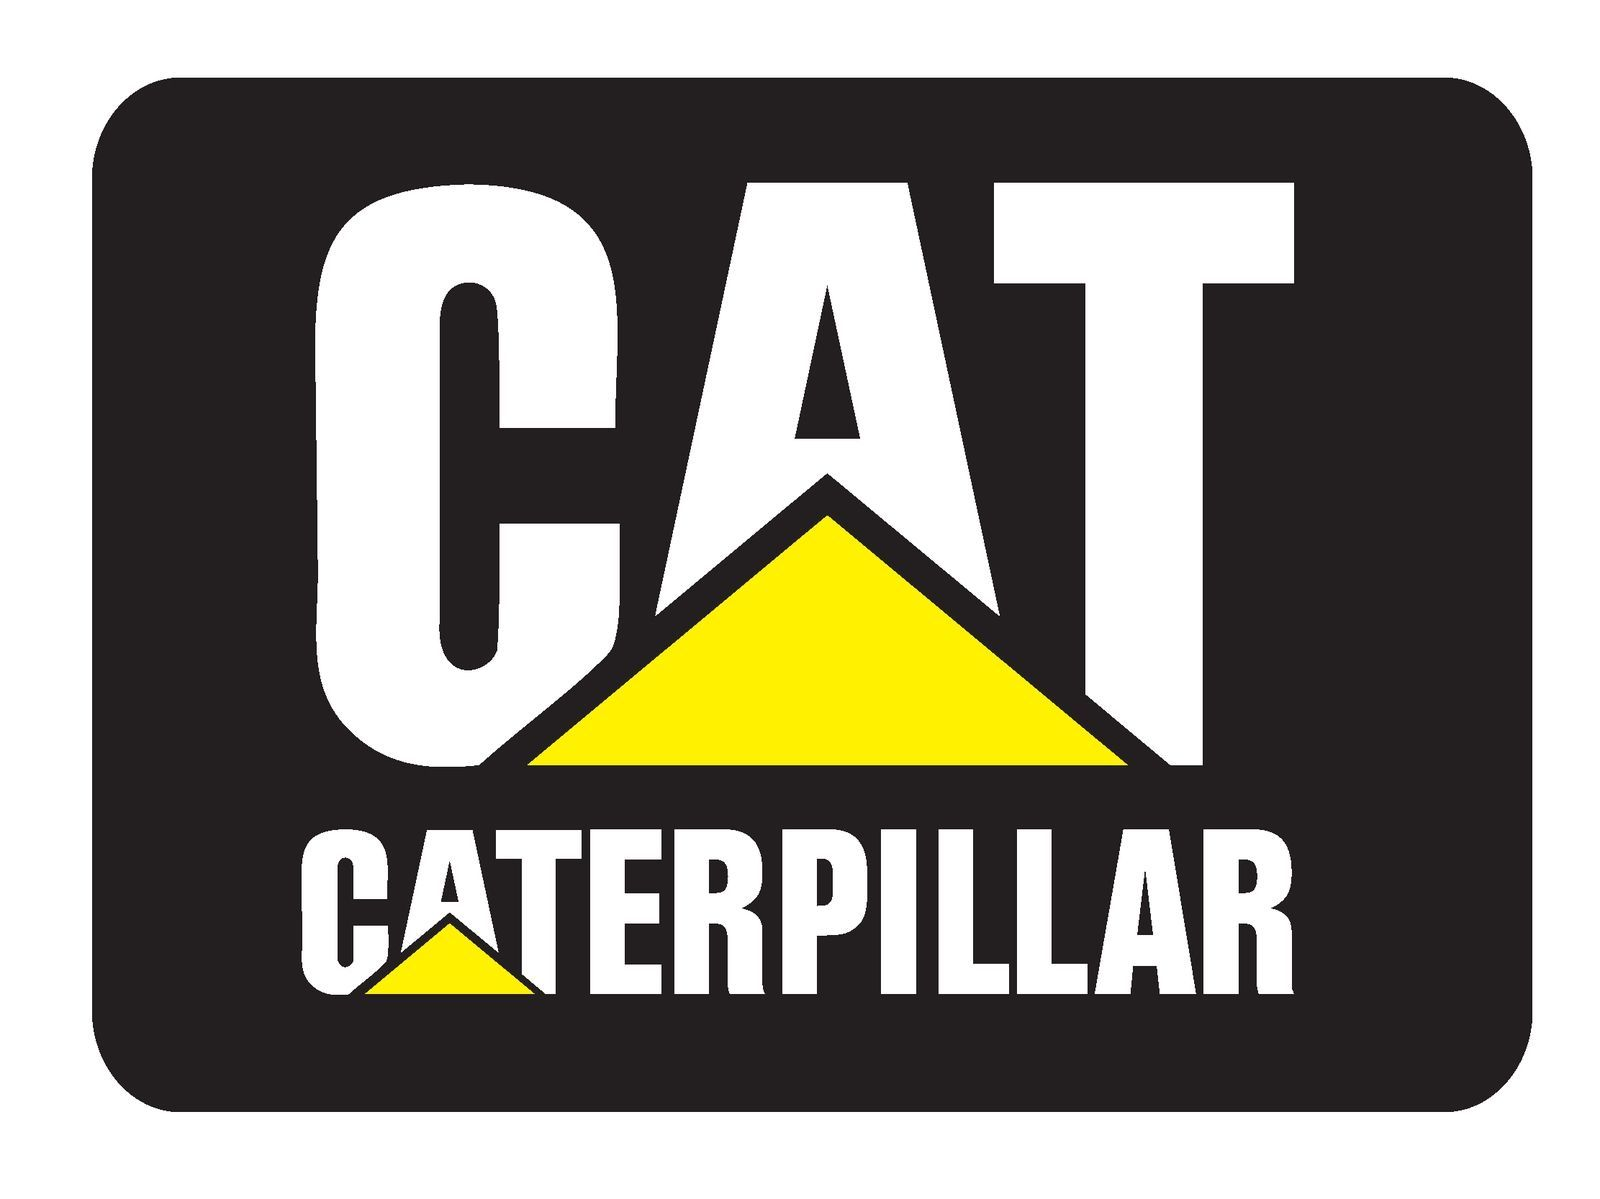 3 99 Caterpillar Vinyl Decal Sticker 5 Sizes Ebay Home Garden Caterpillar Equipment Trucks Logos